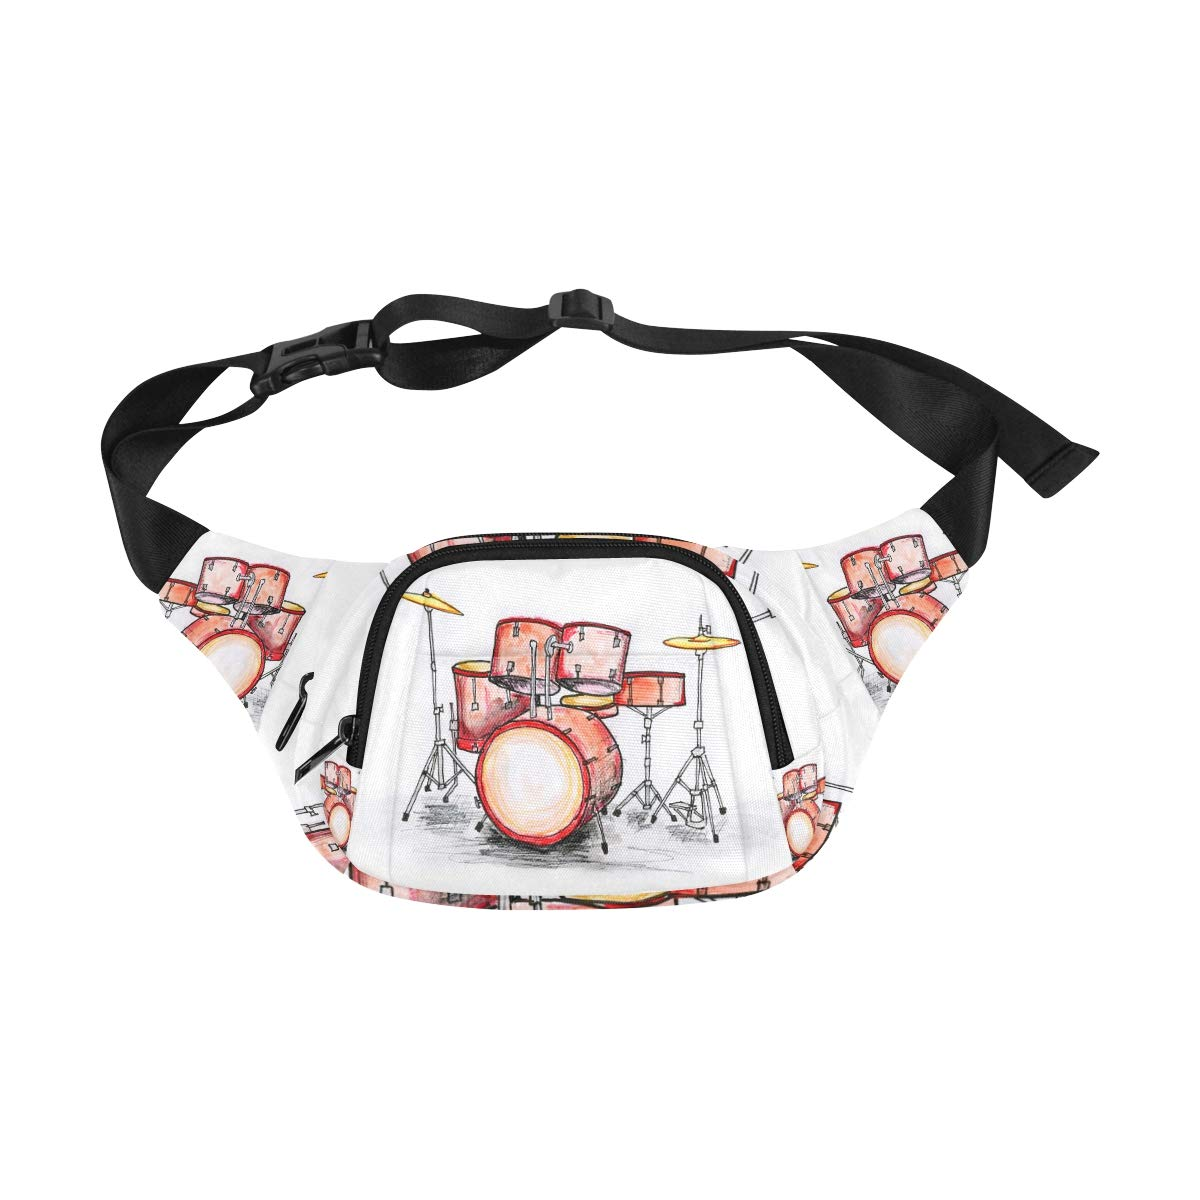 Hand Drawn Musical Drum Set Fenny Packs Waist Bags Adjustable Belt Waterproof Nylon Travel Running Sport Vacation Party For Men Women Boys Girls Kids